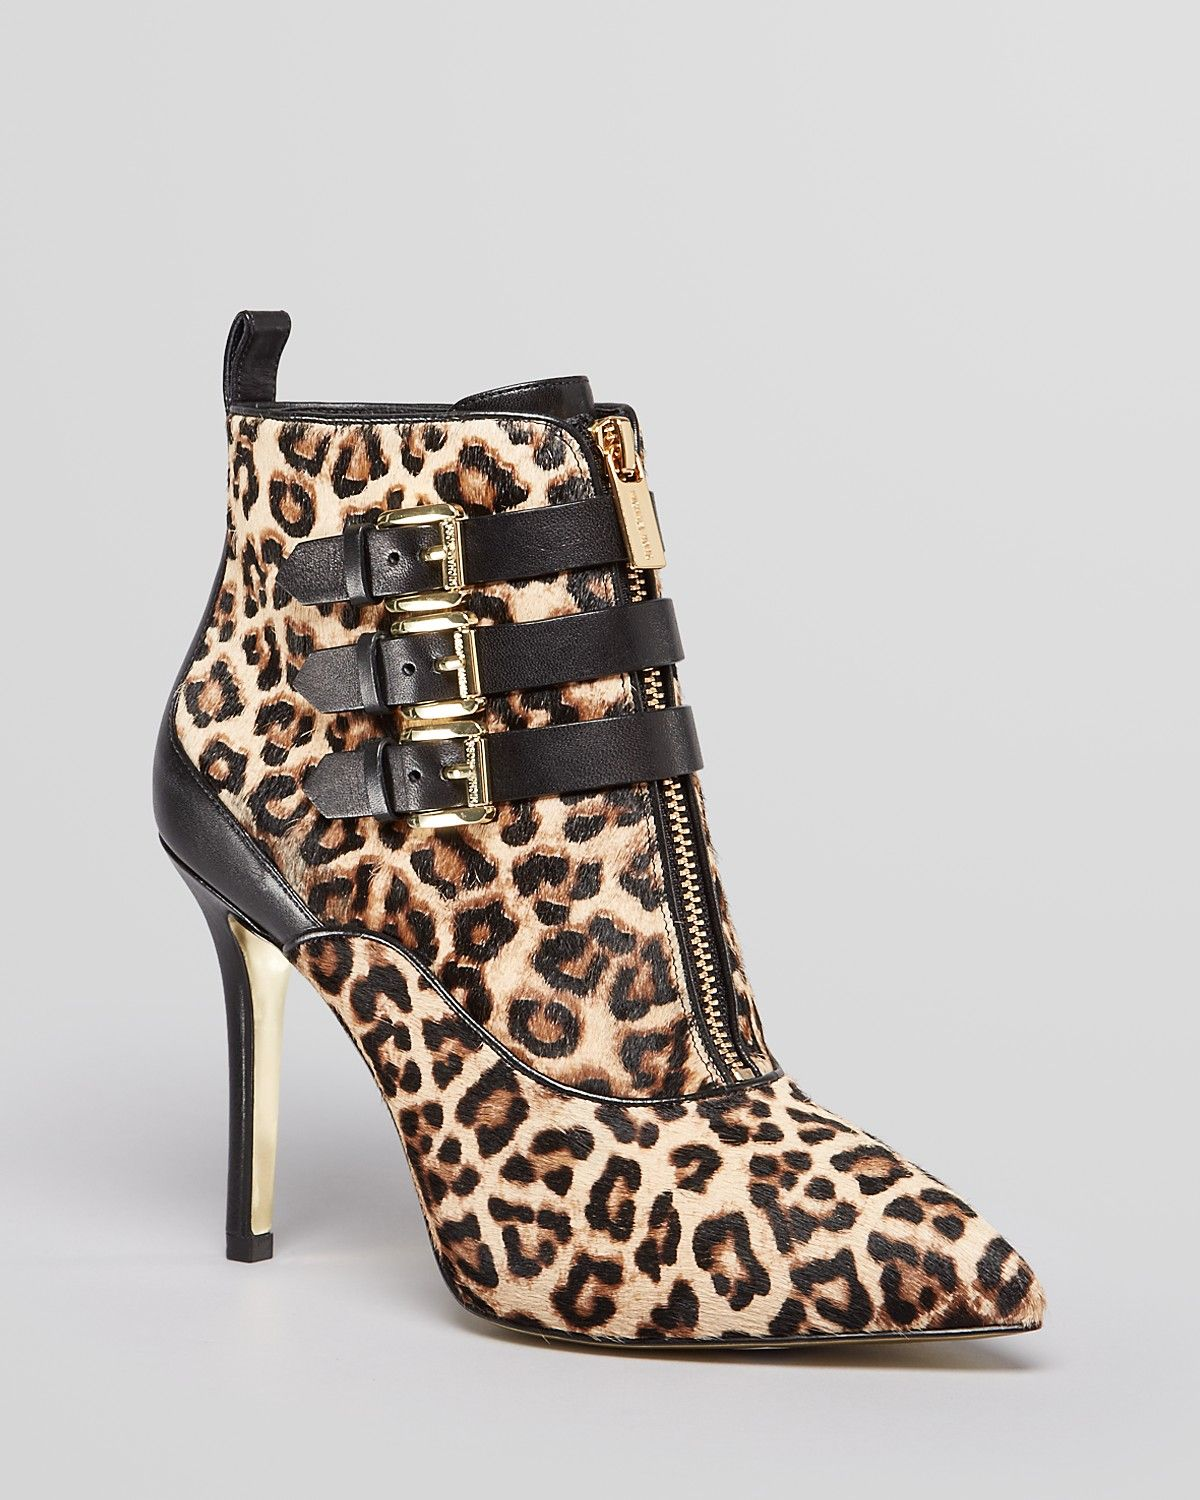 c7ad28310b4 MICHAEL Michael Kors Pointed Toe Booties - Brena Leopard Print High Heel